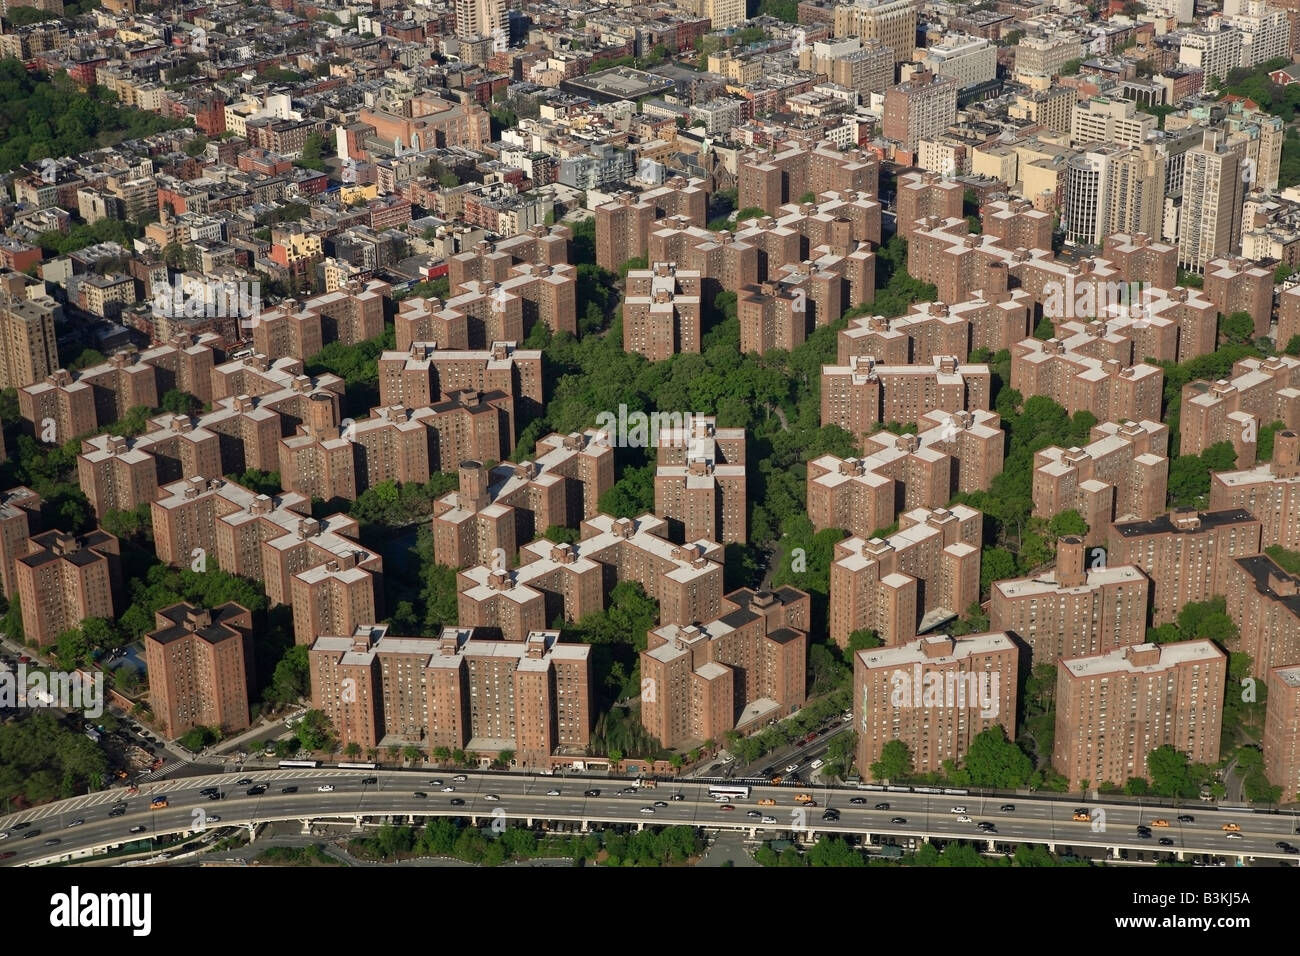 Aerial view of stuyvesant town and peter cooper village for Stuyvesant town nyc